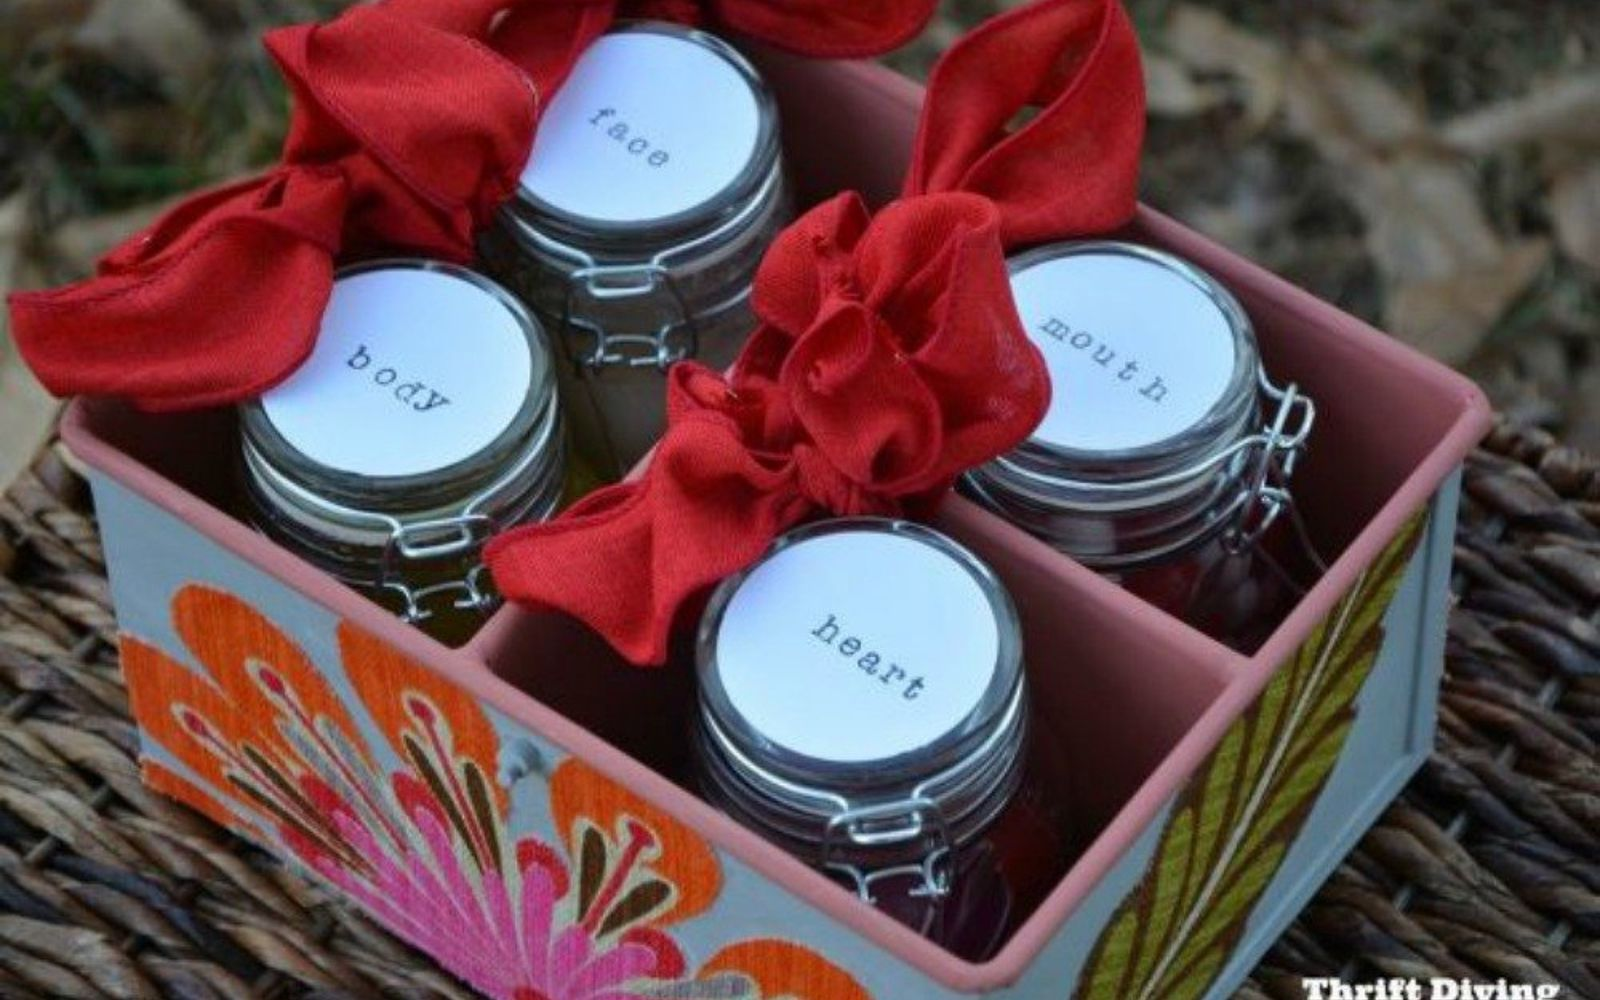 s 20 heartfelt valentine s day gifts for under 20, seasonal holiday decor, valentines day ideas, Fill a box with small gifts